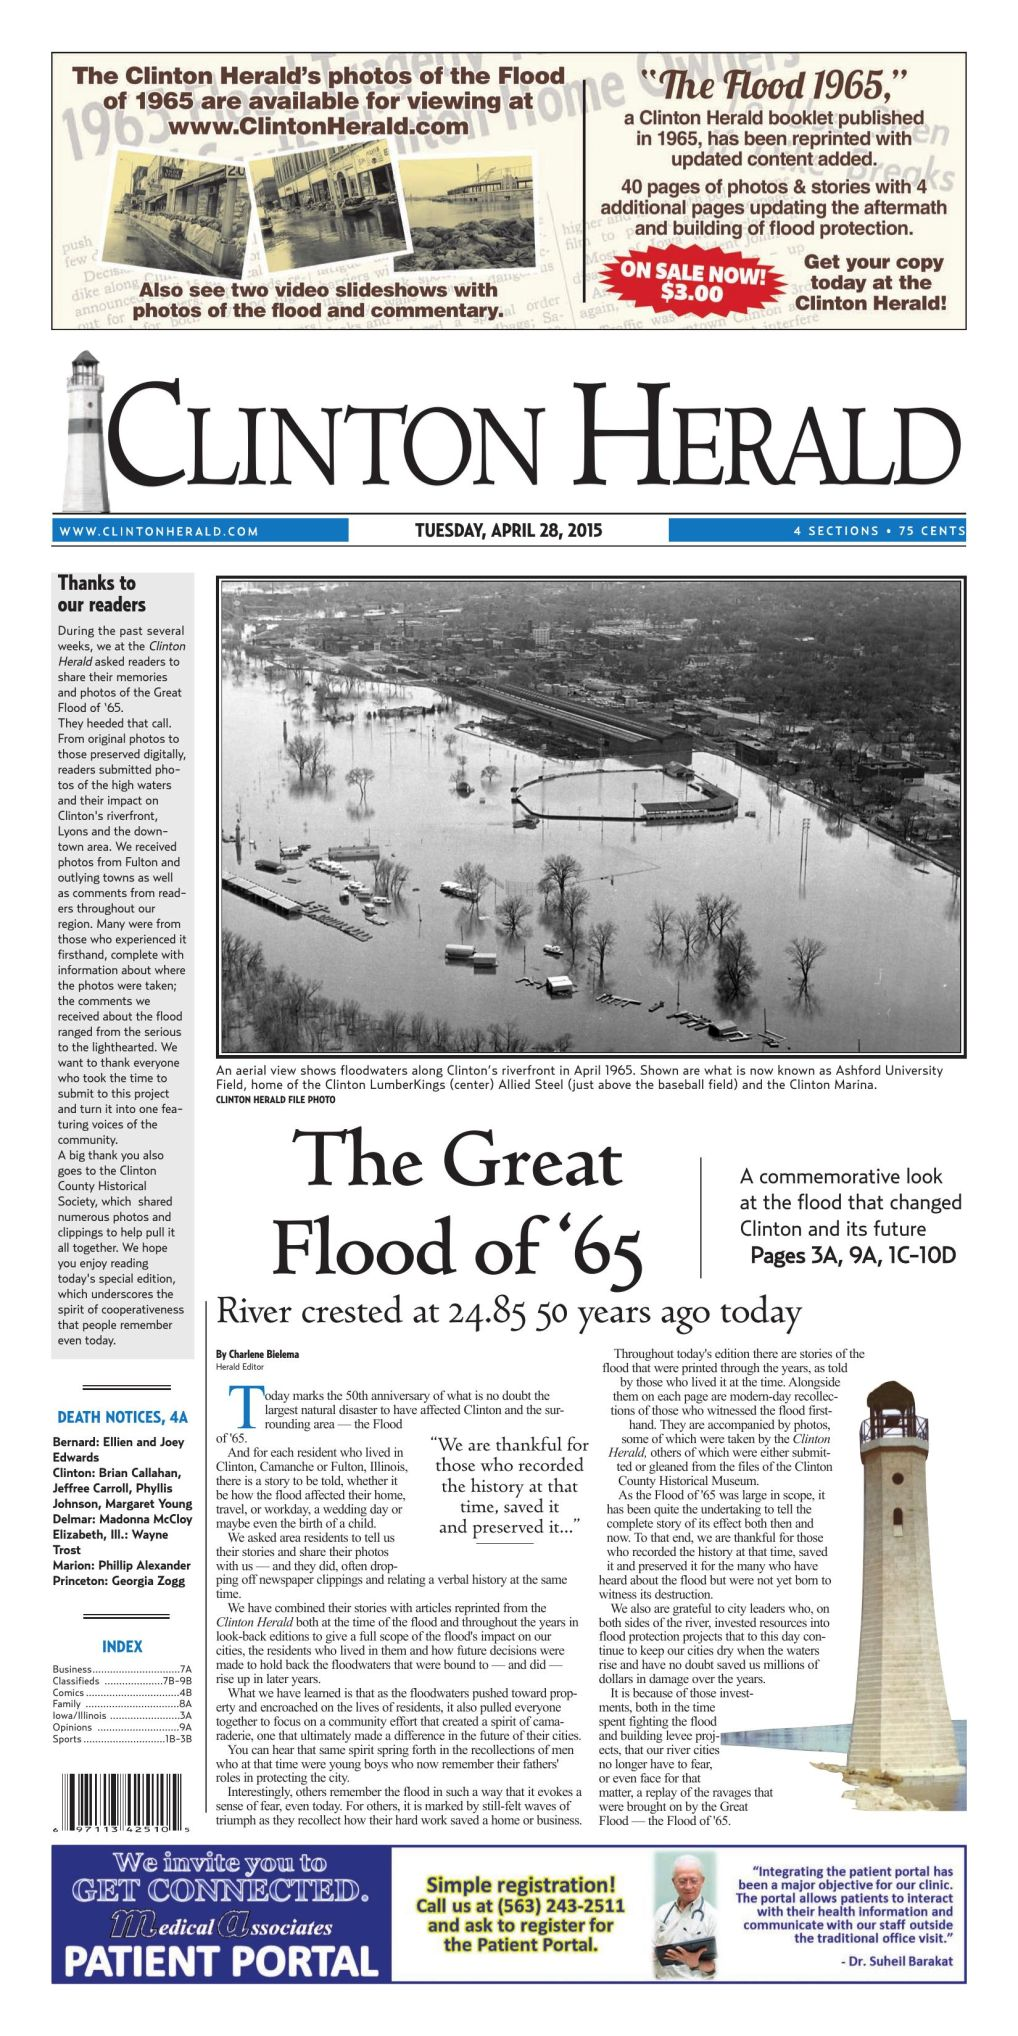 SPECIAL EDITION: Great Flood of 1965